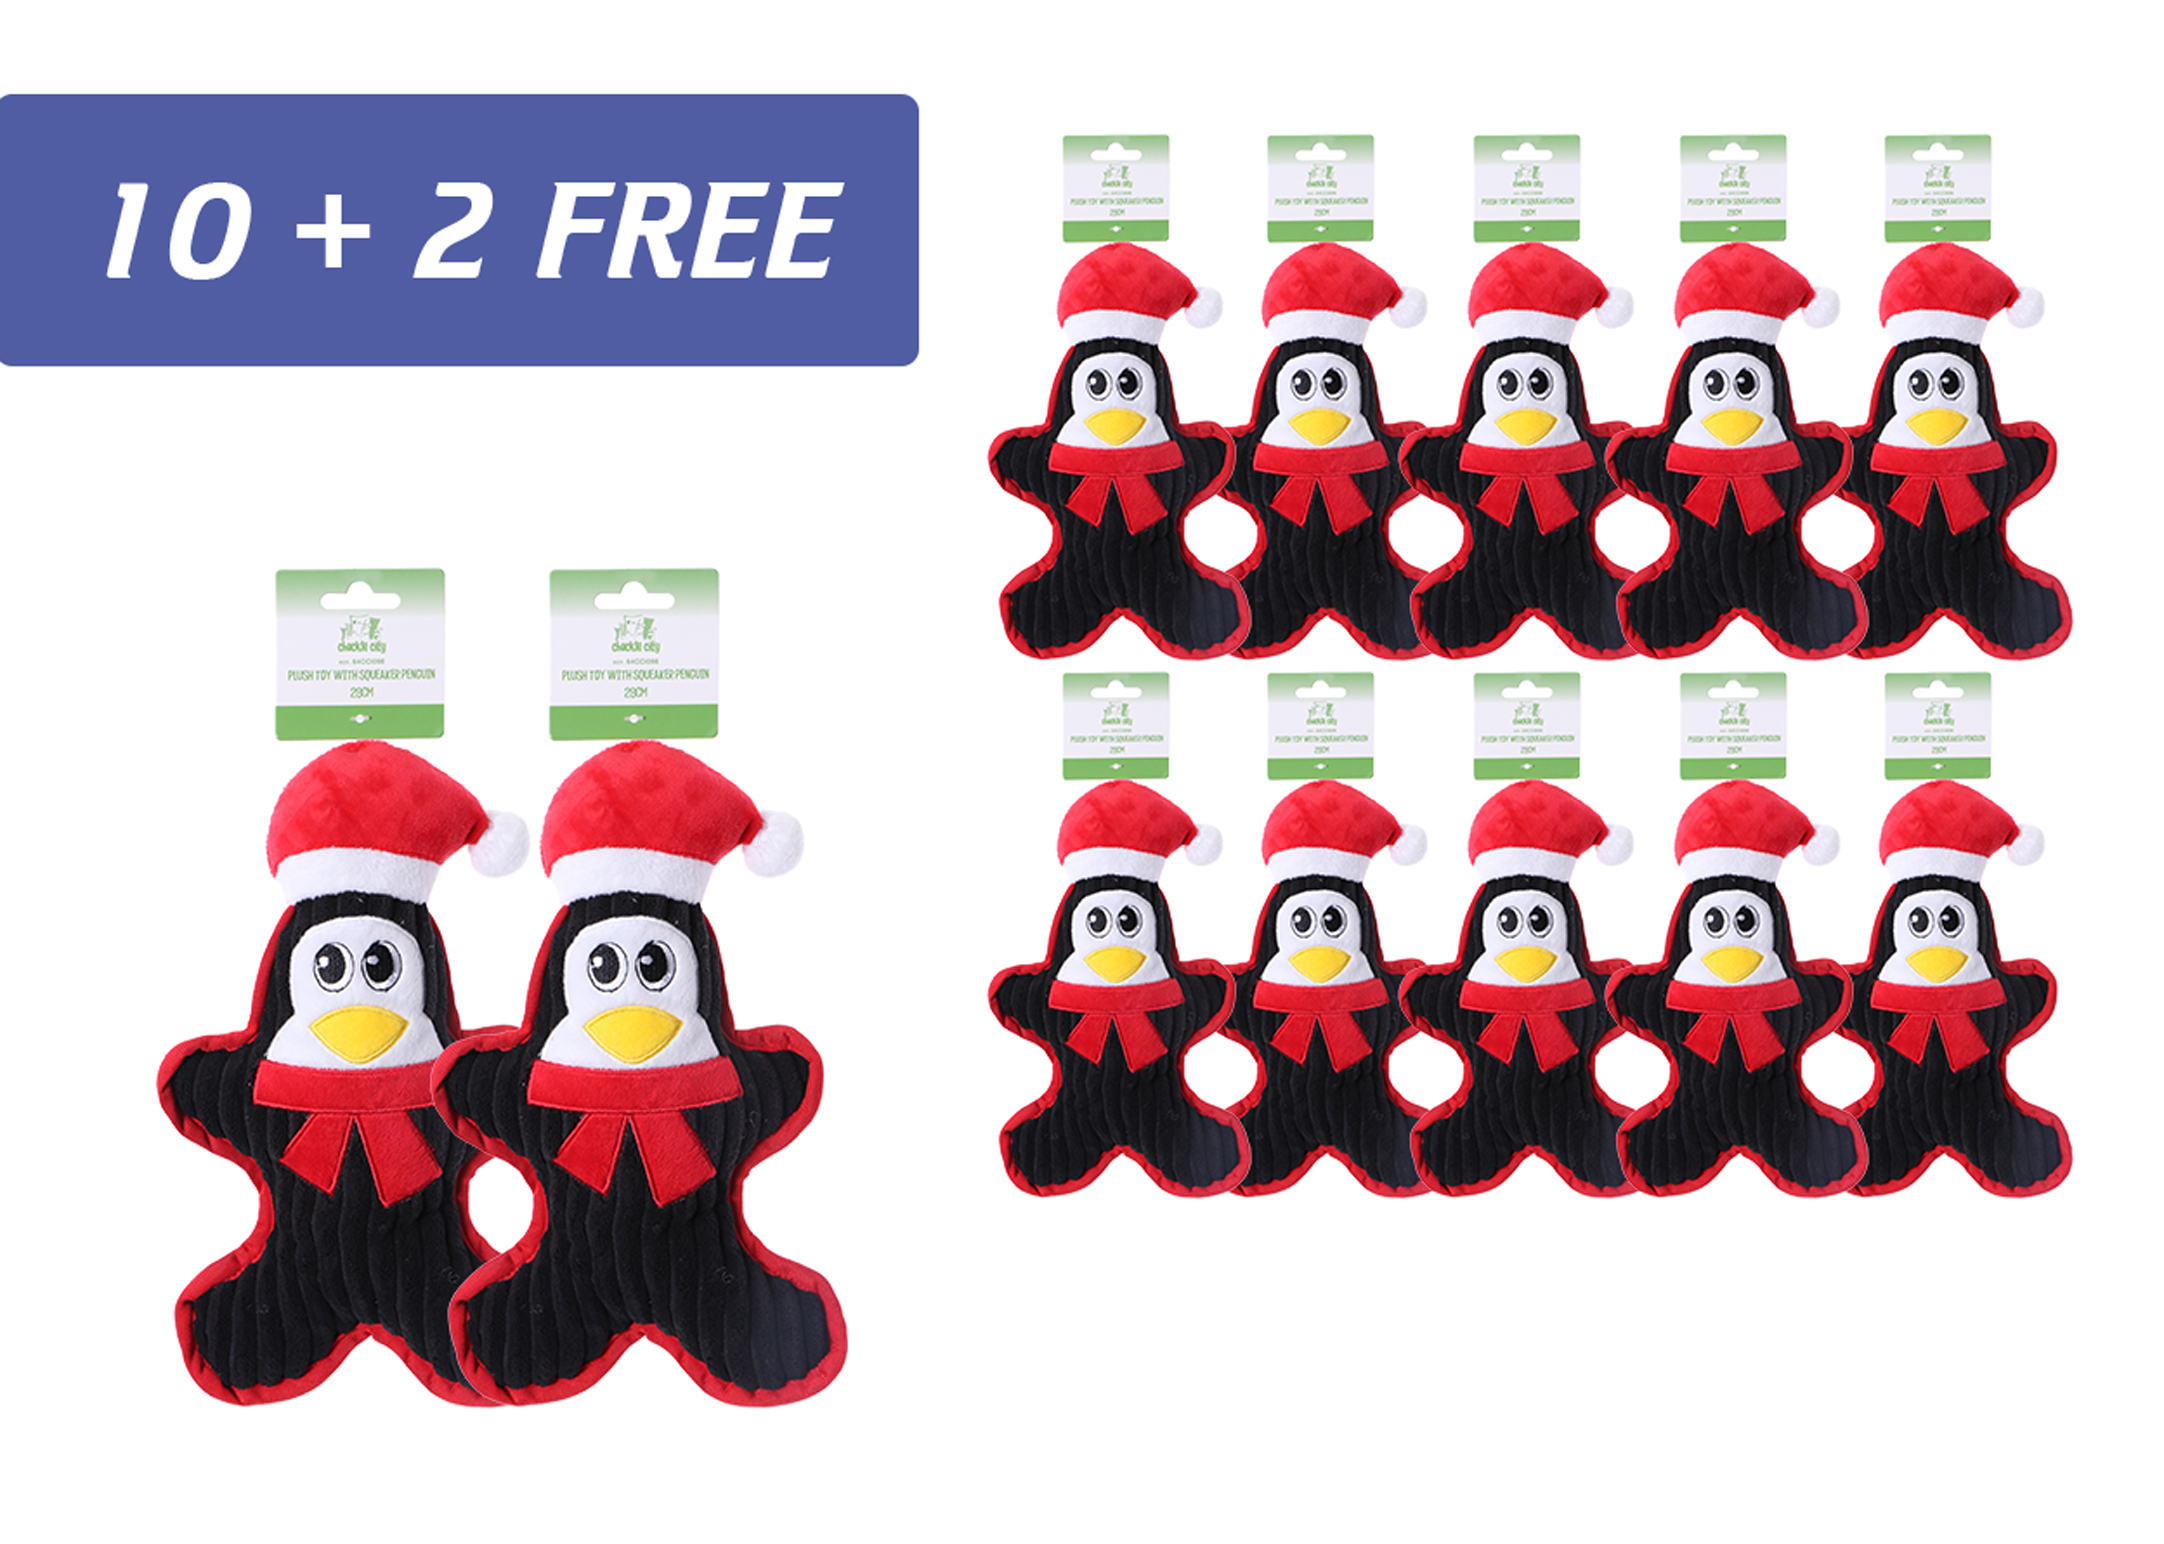 Chuckle City promo 10+2 free Plush Toy with Squeaker Penguin 28 cm